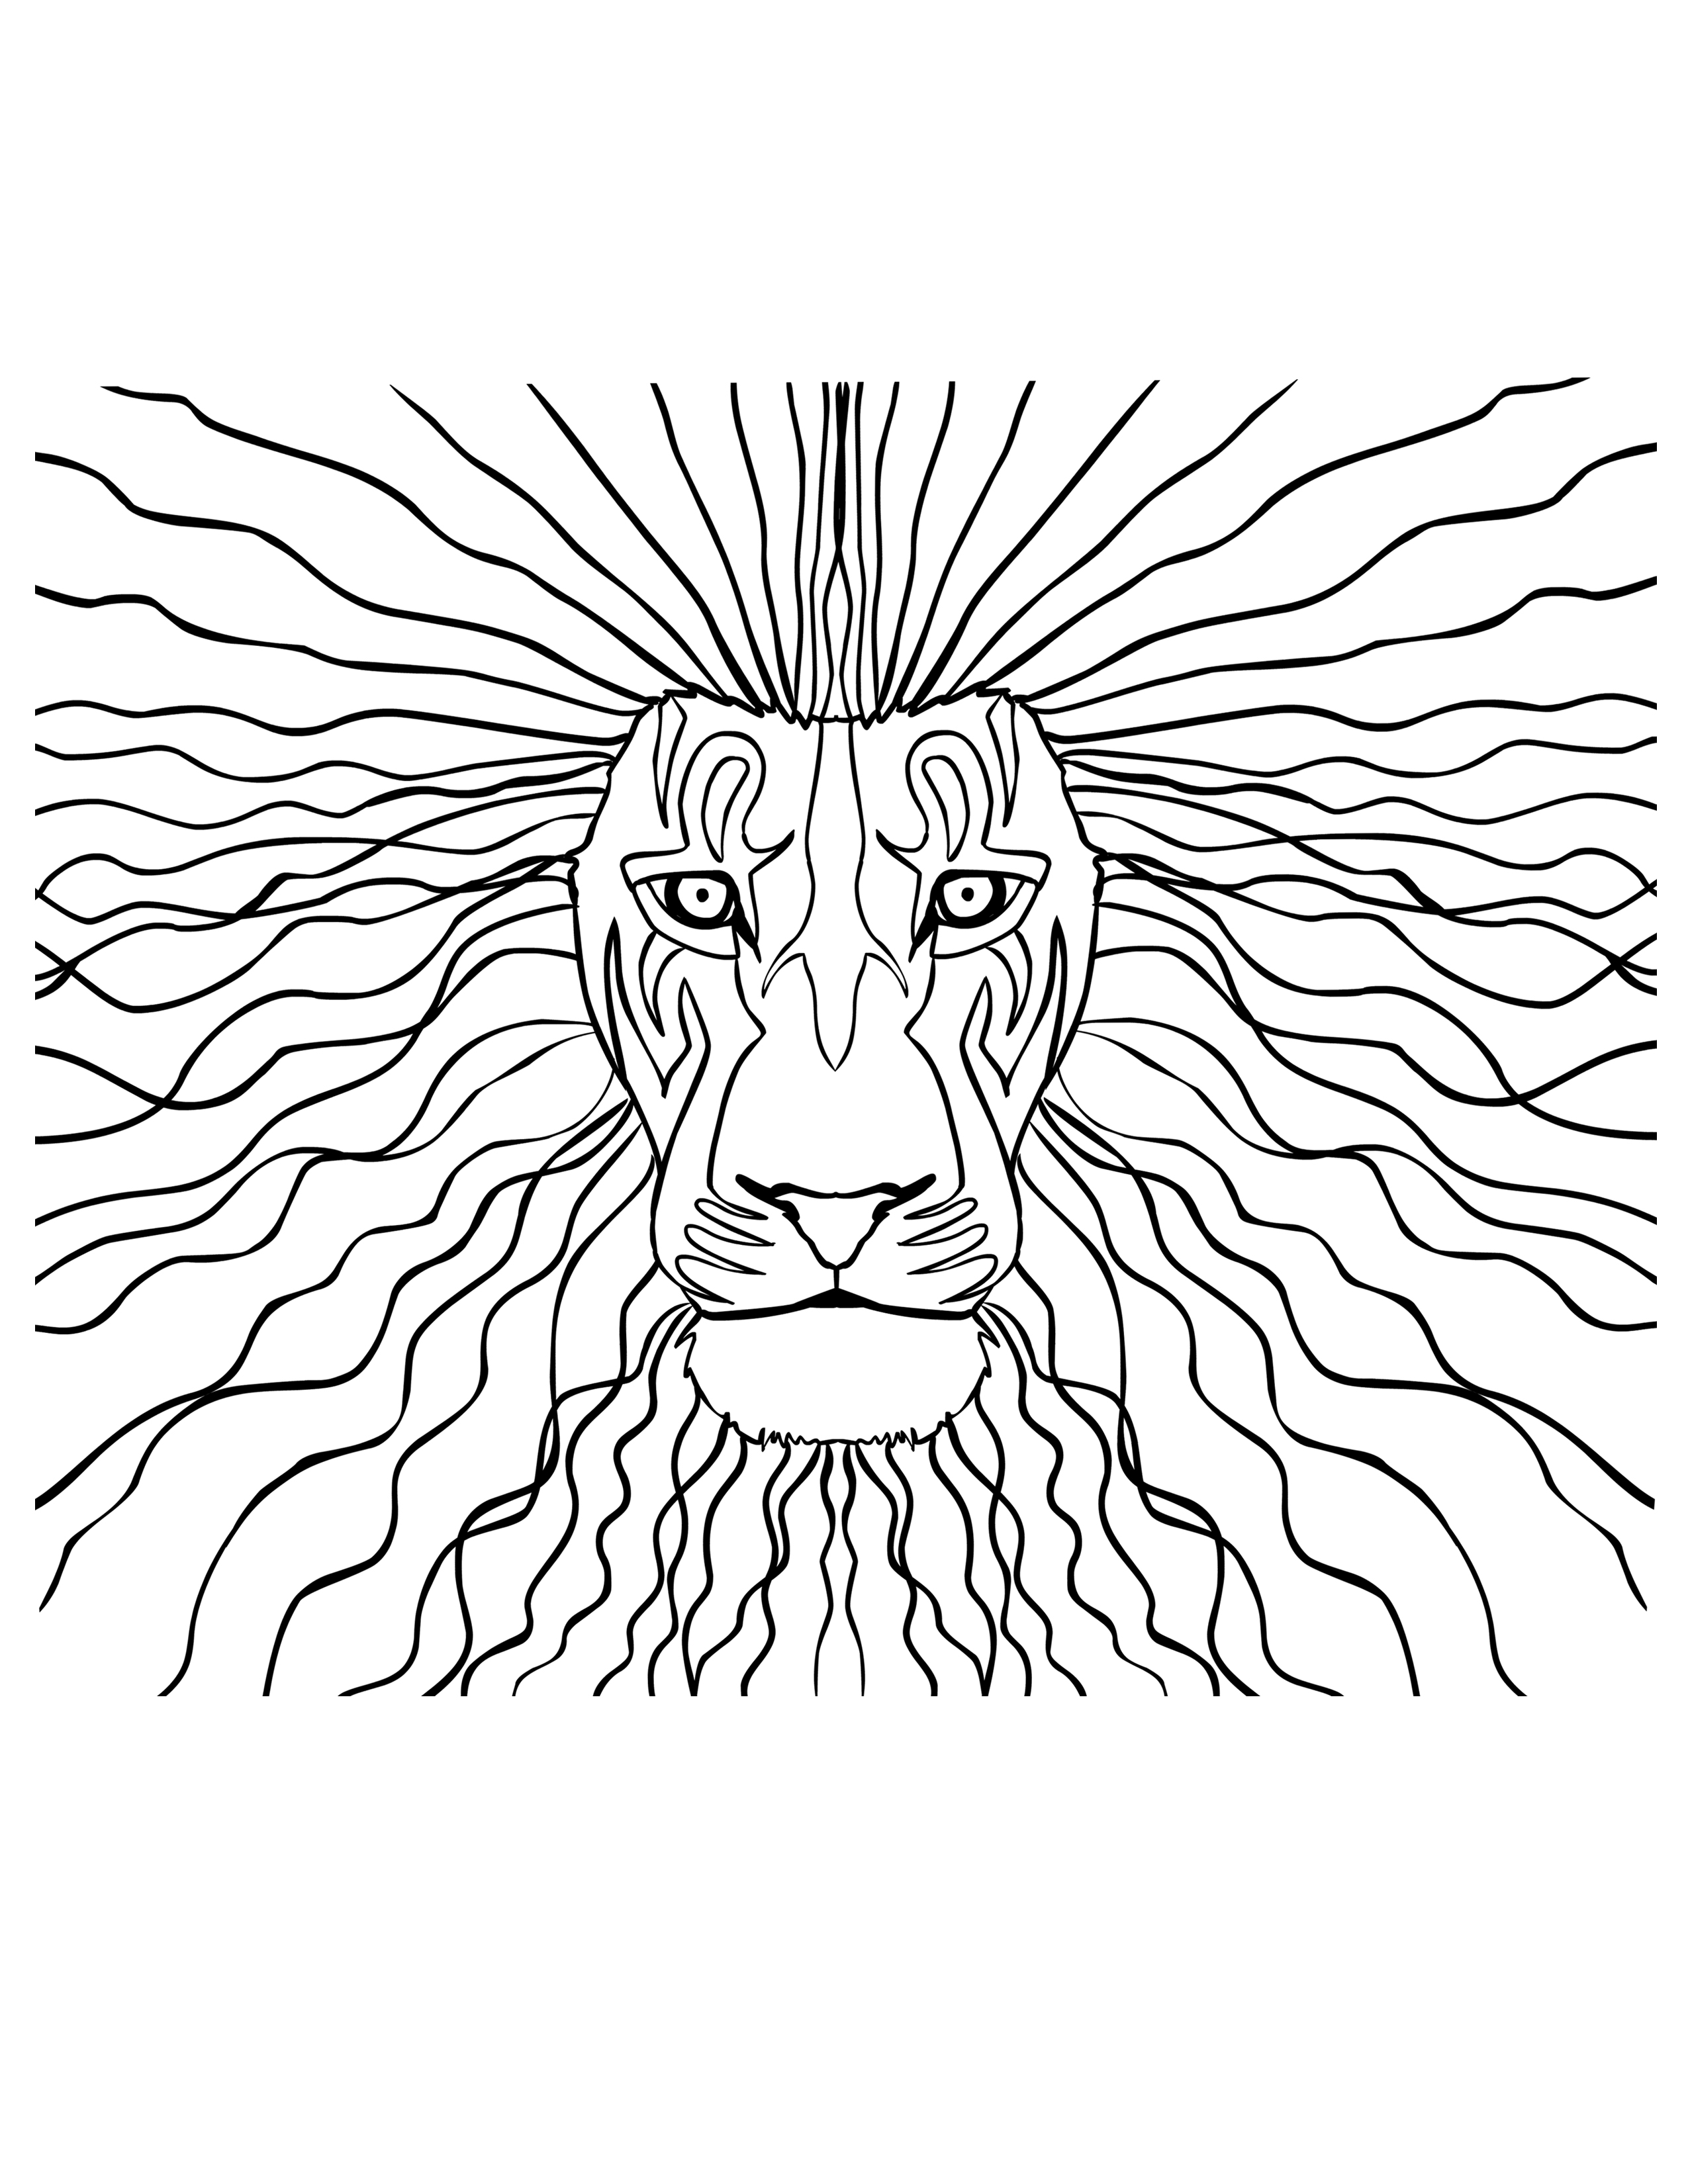 Magestic Lion For Print Glorious Eagle Dancing Stallion Decorative Horse Profile